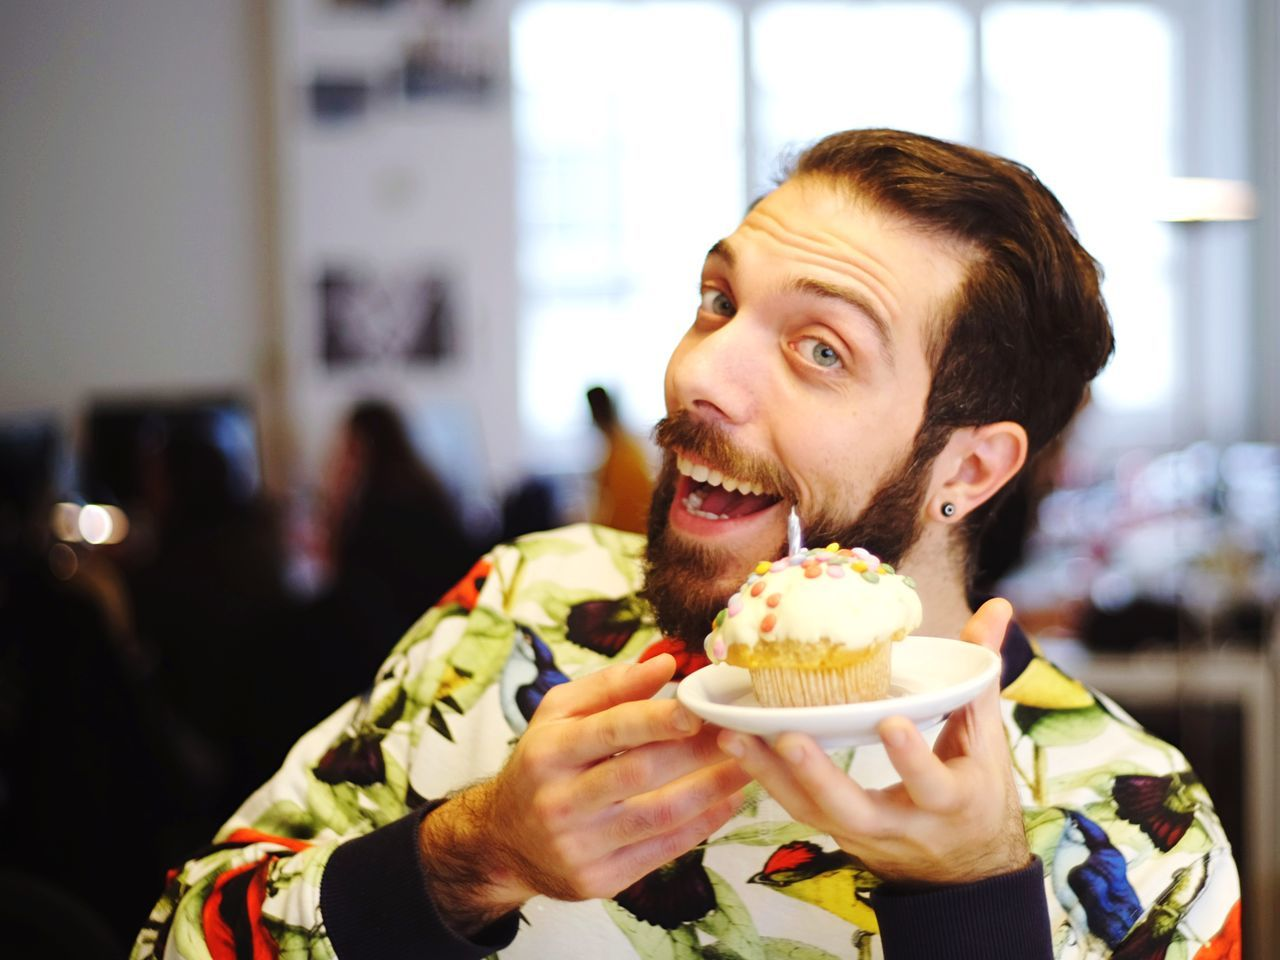 Portrait Of Cheerful Young Man Holding Cupcake During Birthday